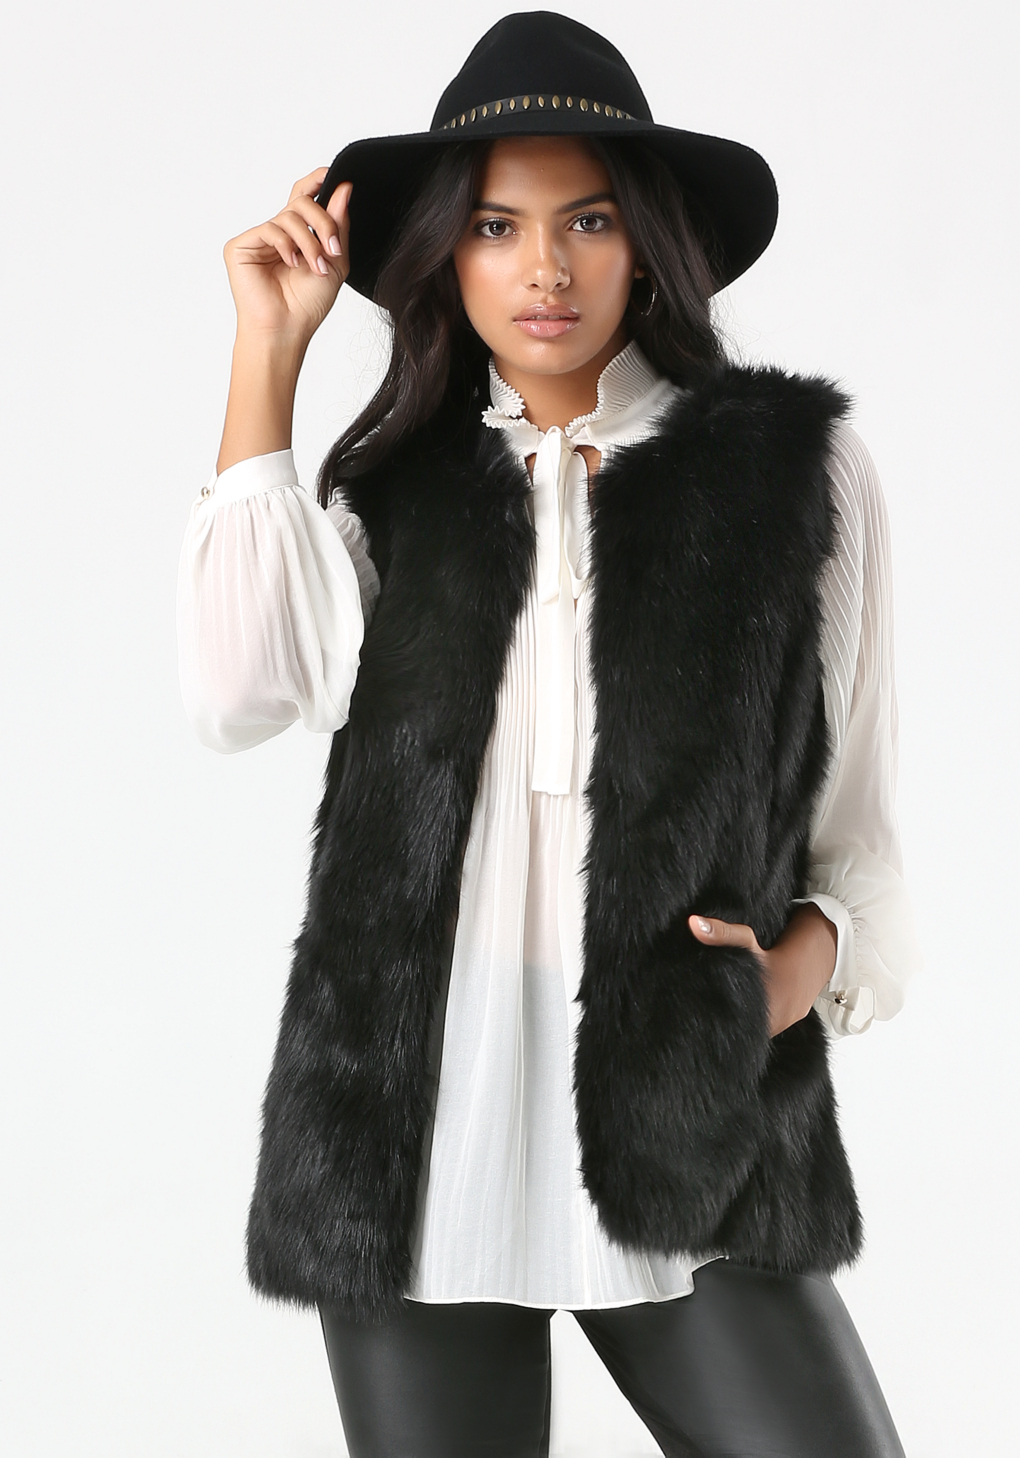 Shop waistcoat cheap online, you can get long, white and black waistcoat for women online at wholesale prices on xianggangdishini.gq PU Leather Spliced Zippered Faux Fur Waistcoat - White - XL. Textured Fringed Knitted Asymmetric Vest - Red - ONE SIZE. Chic Stand Collar Sleeveless Striped Waistcoat For Women - White - XL.